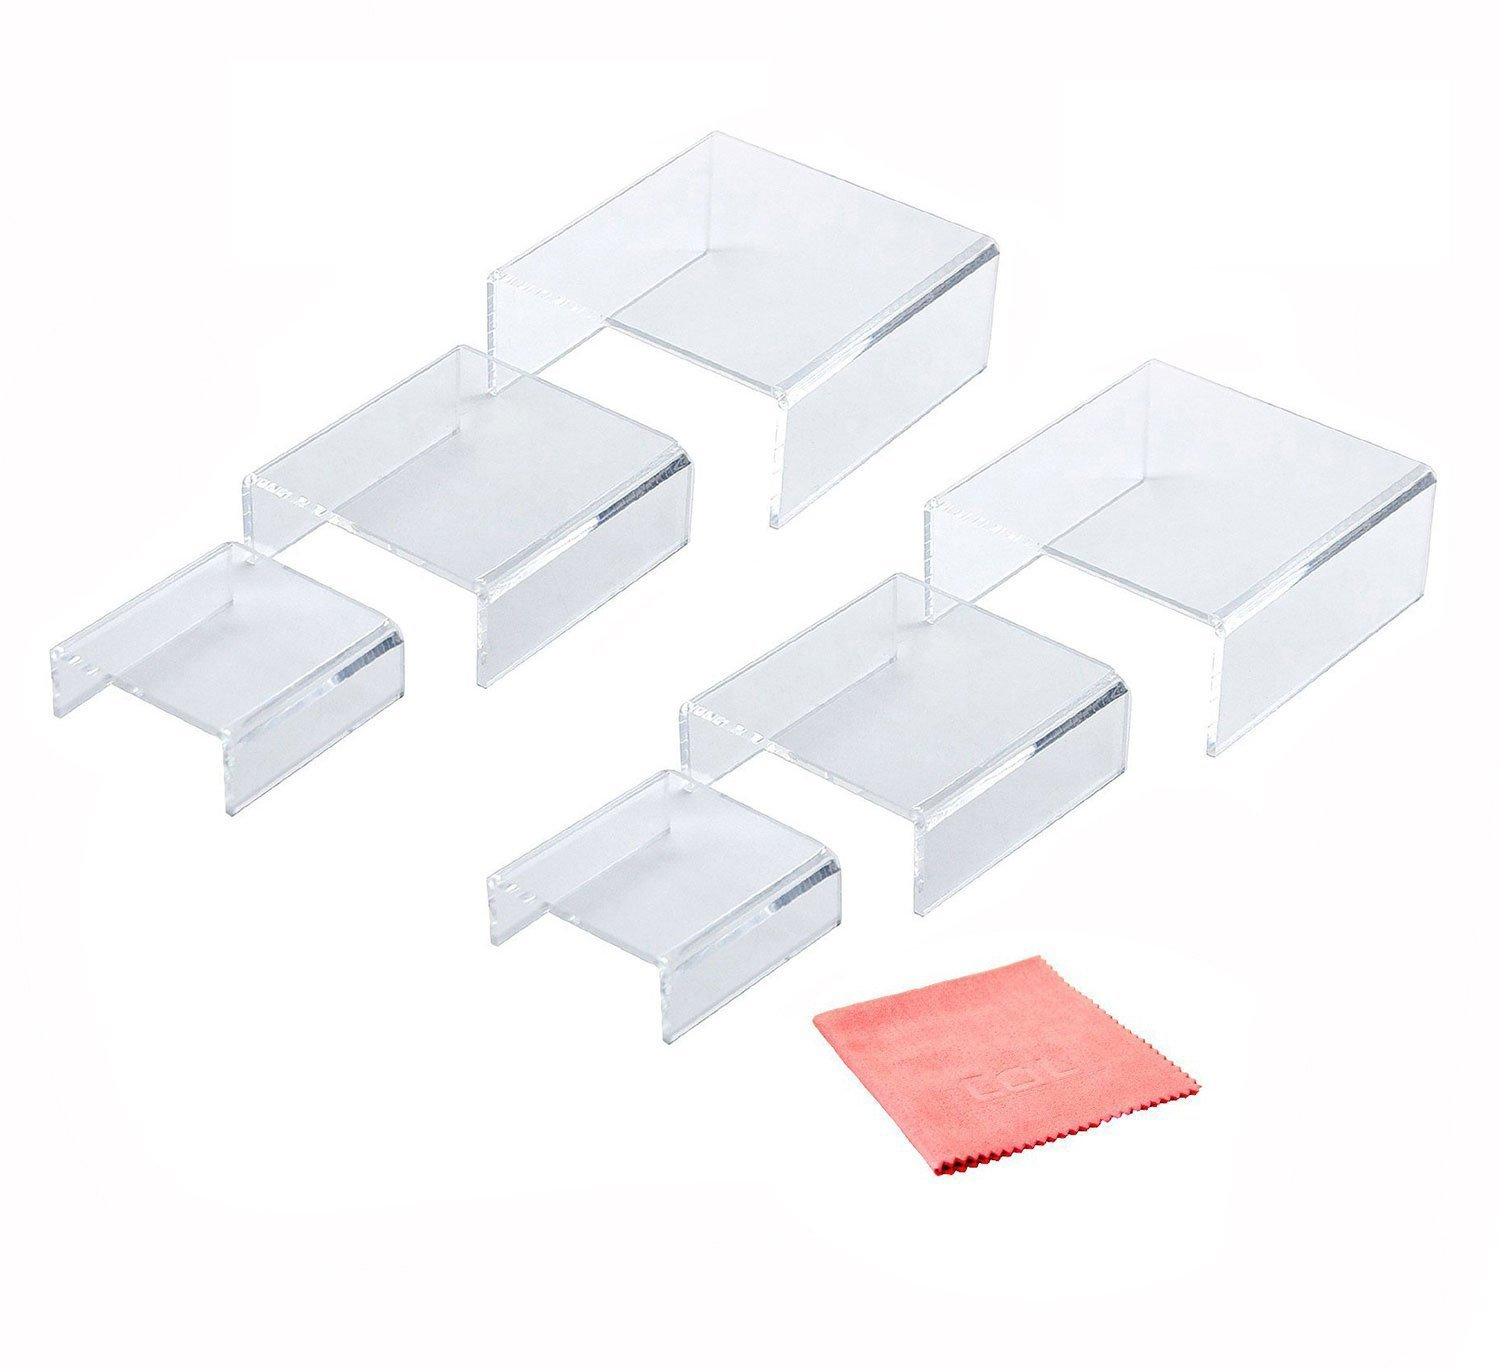 Combination of Life 2 Packs Low Profile Clear Acrylic Risers for Displays Set of 3